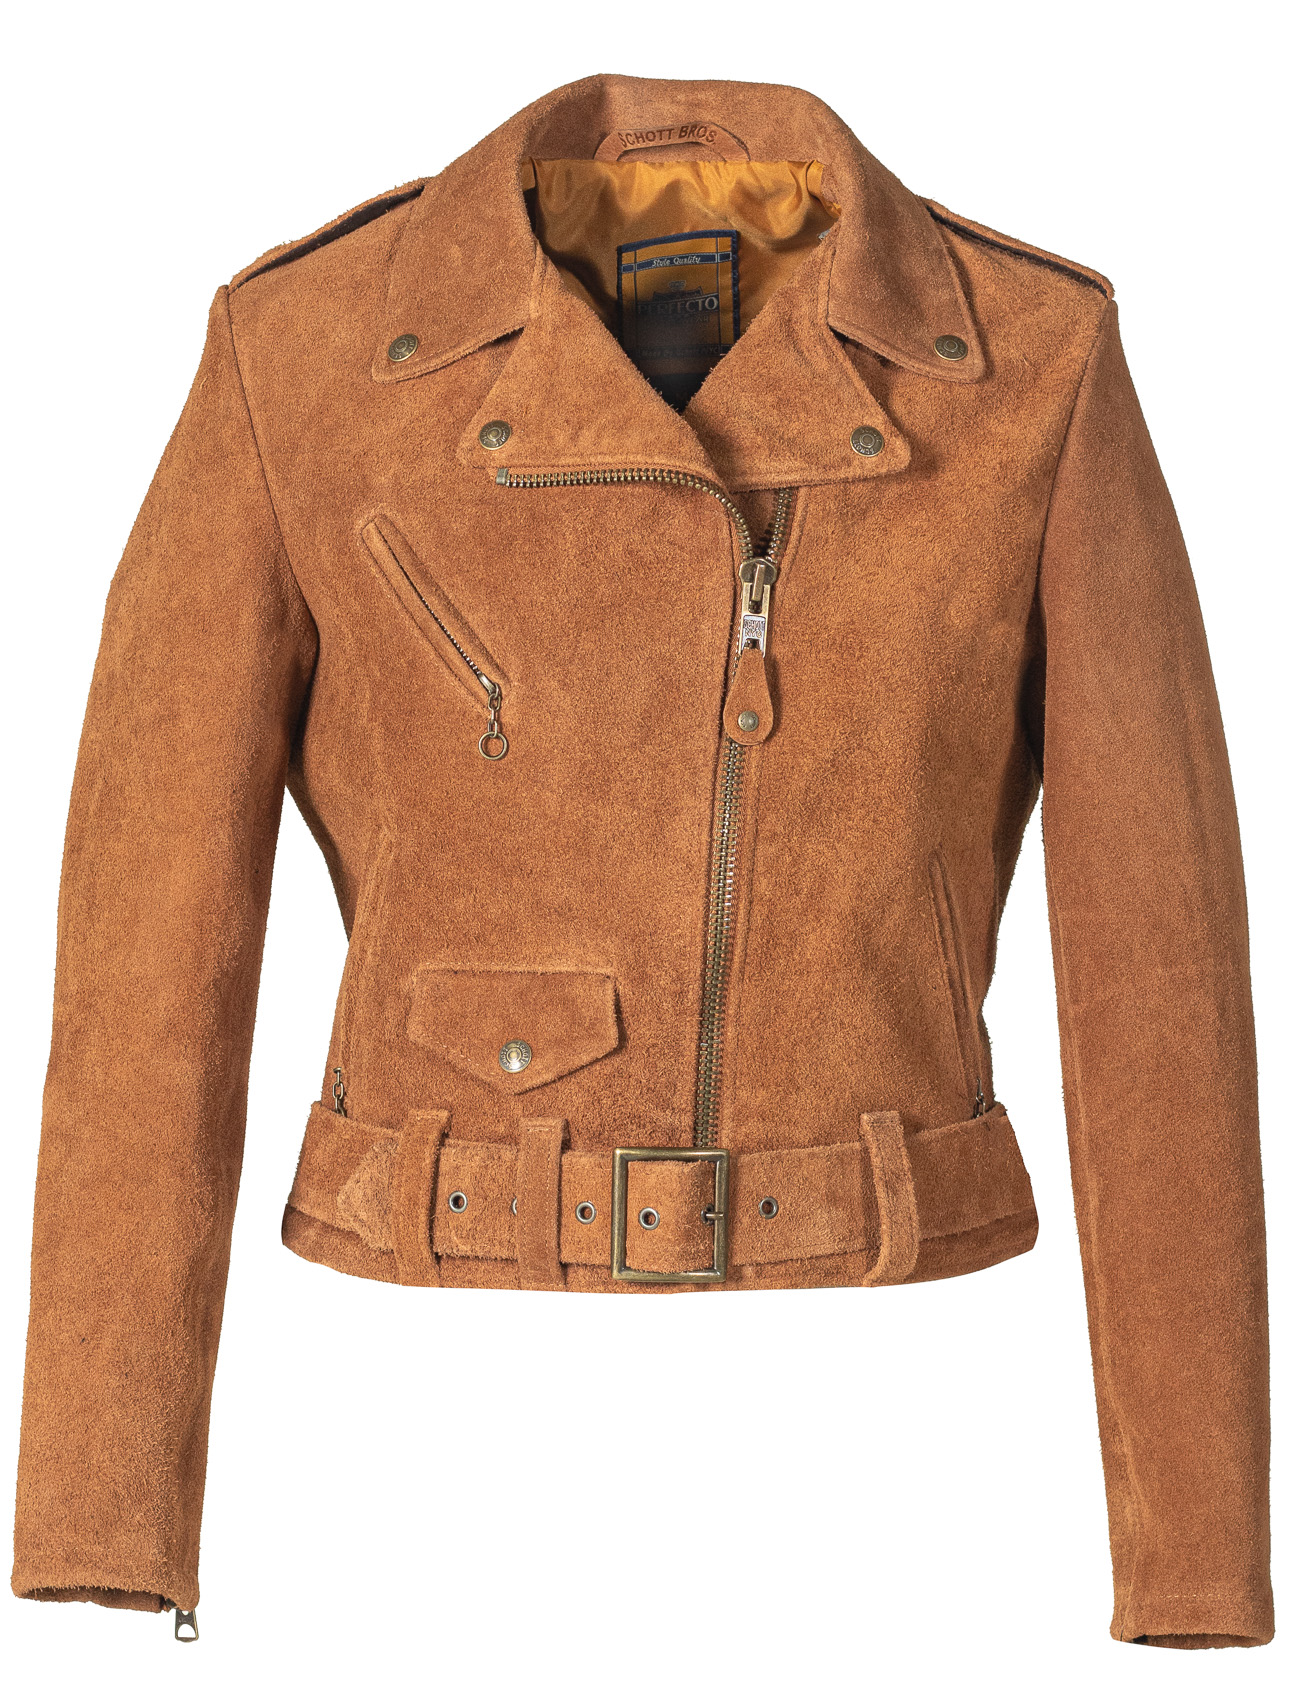 Schott N.Y.C. 318W Women's Rough Out Cow Suede Cropped Perfecto Jacket